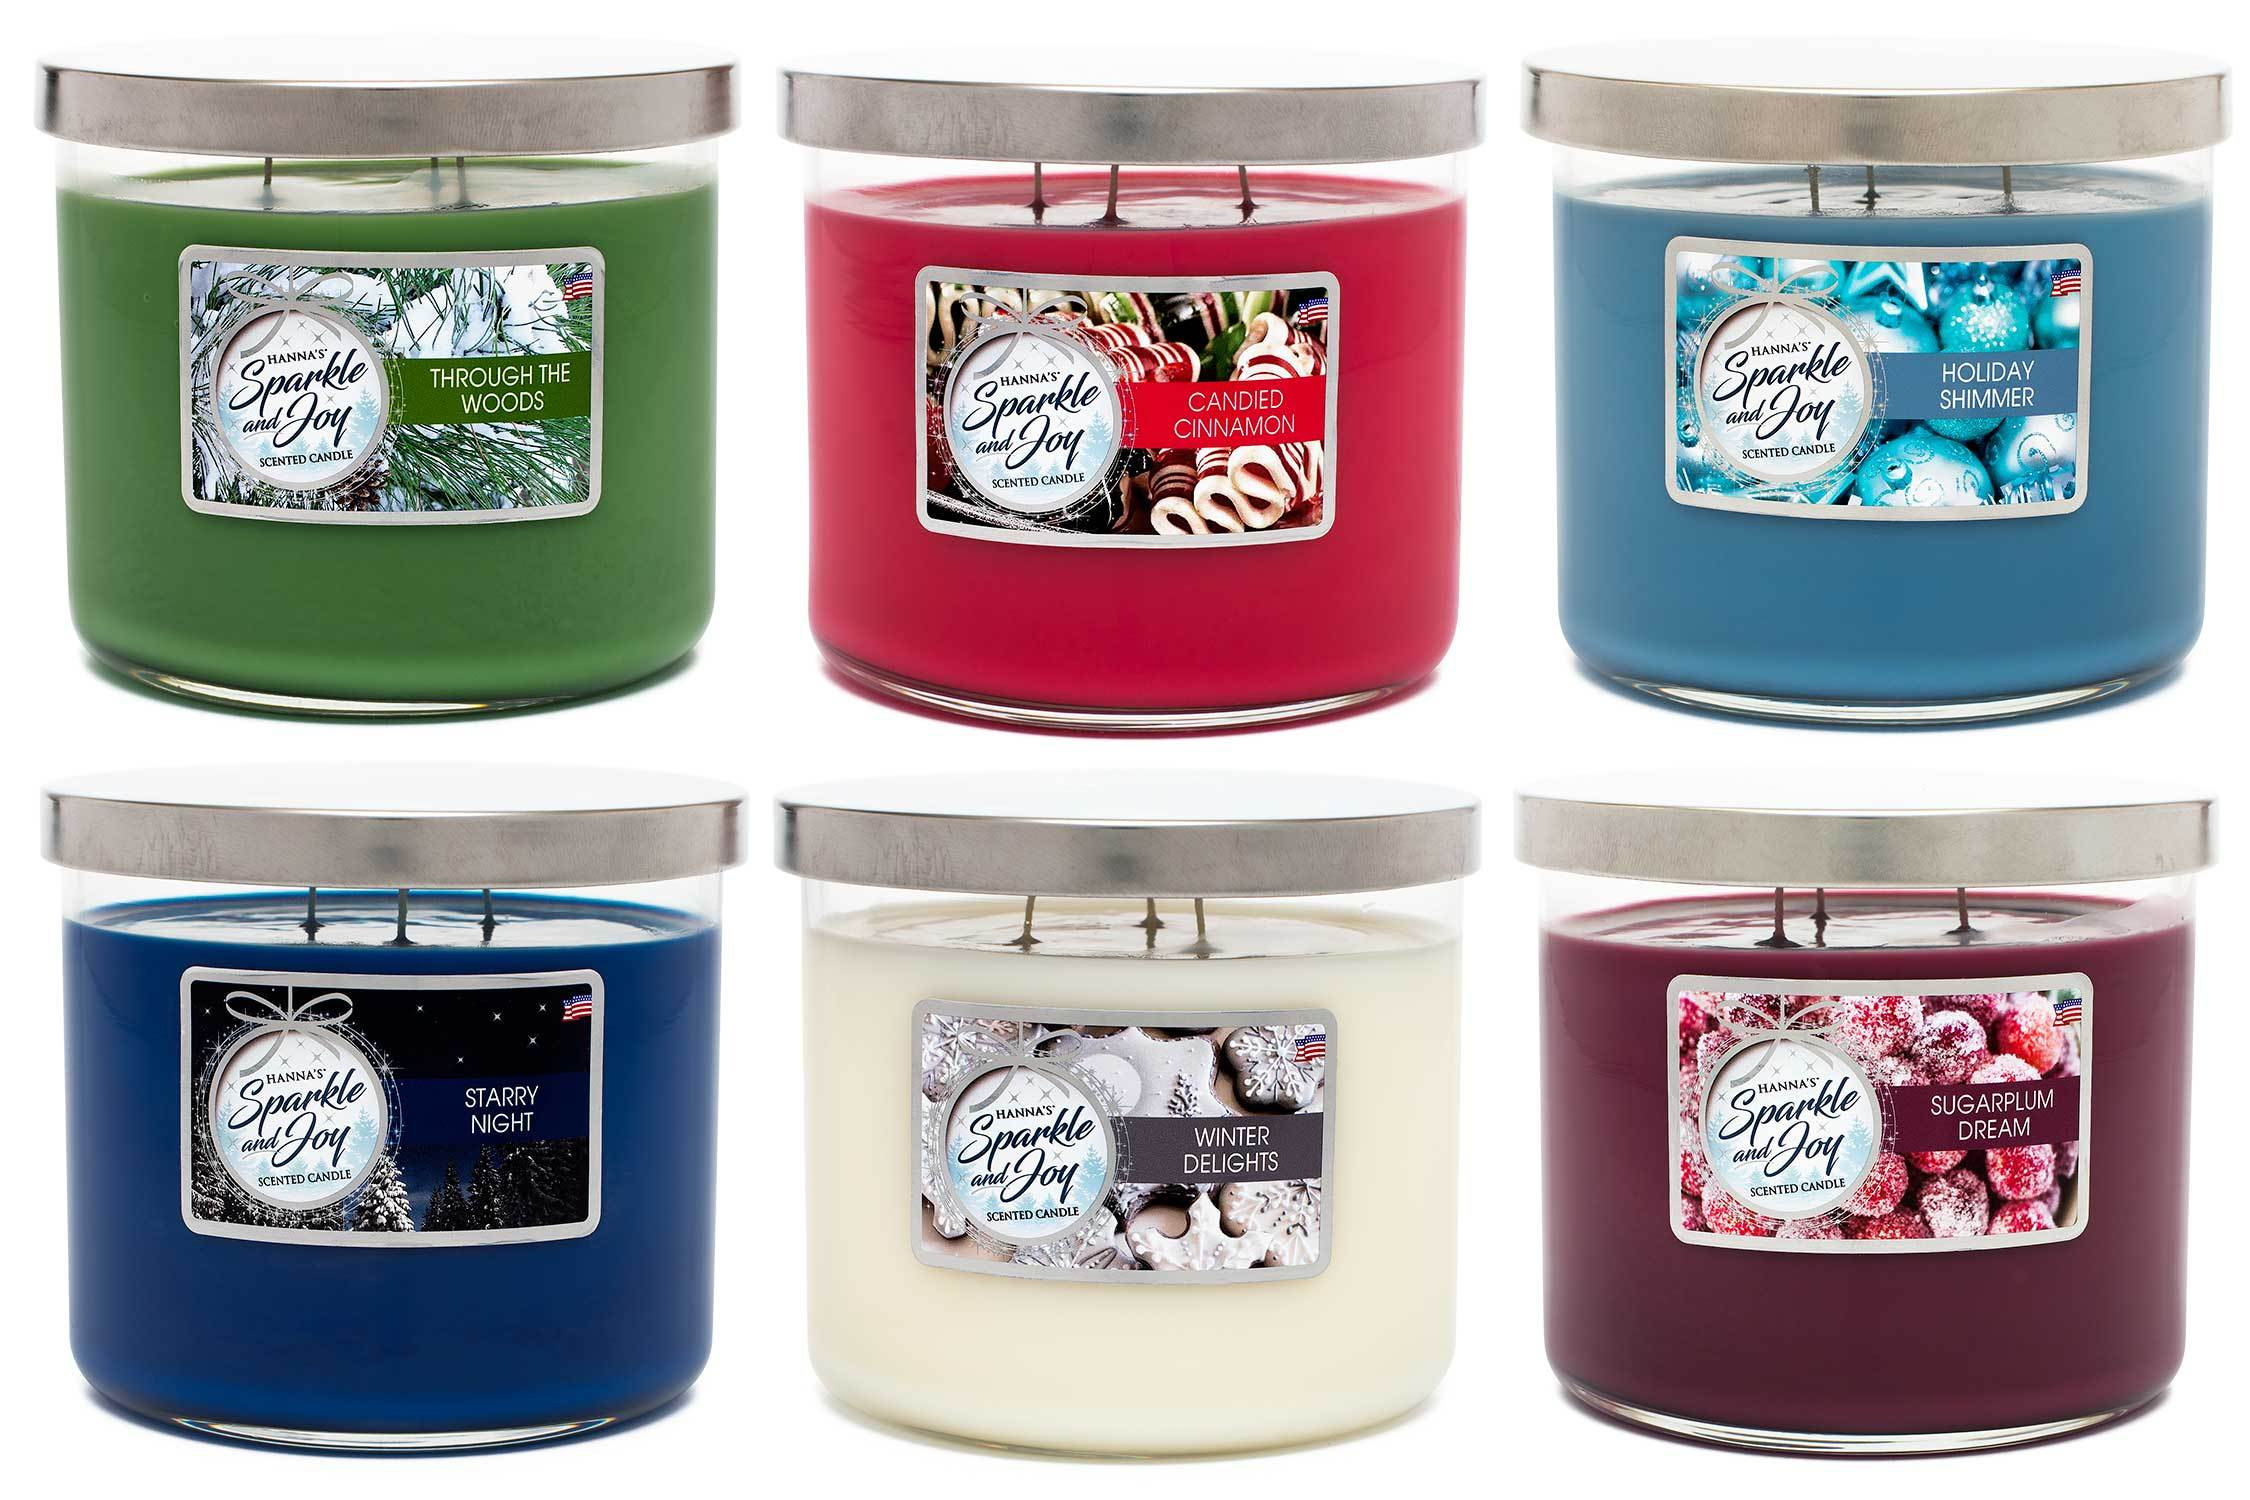 Starry Night Scented Large 3 wick Candle - Candlemart.com